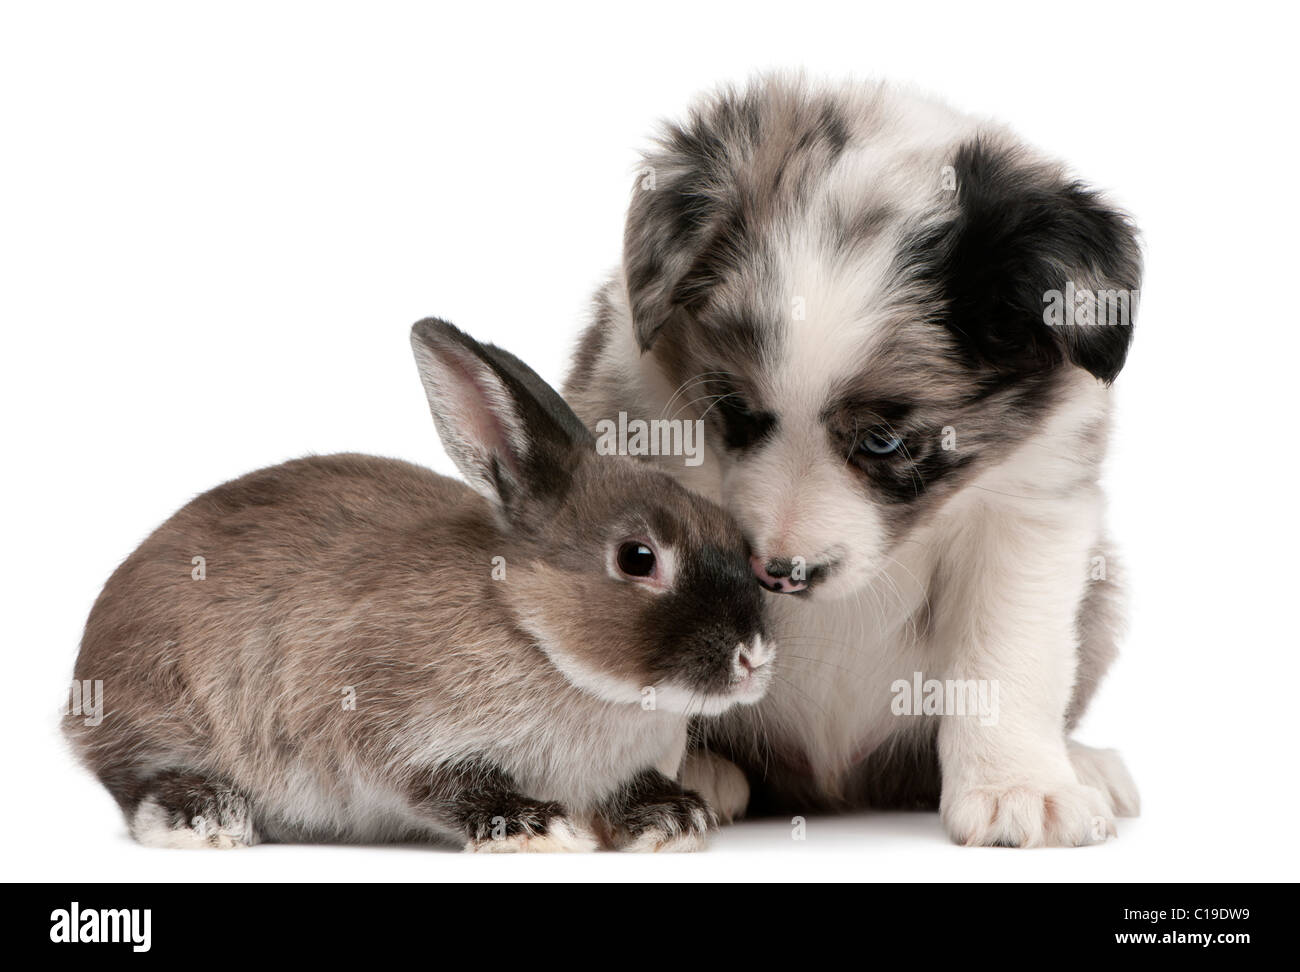 Blue Merle Border Collie Puppy Stock Photos & Blue Merle